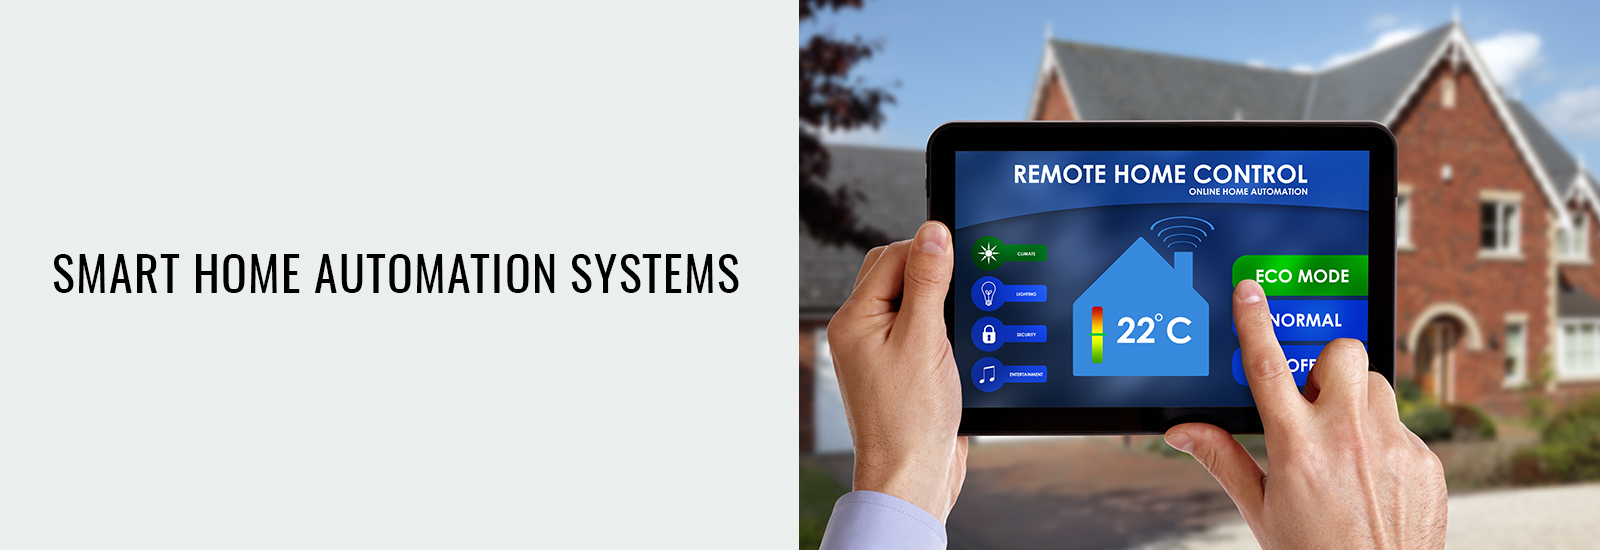 Smart Home Automation System At Maple Ridge BC- Sky Security Ltd.